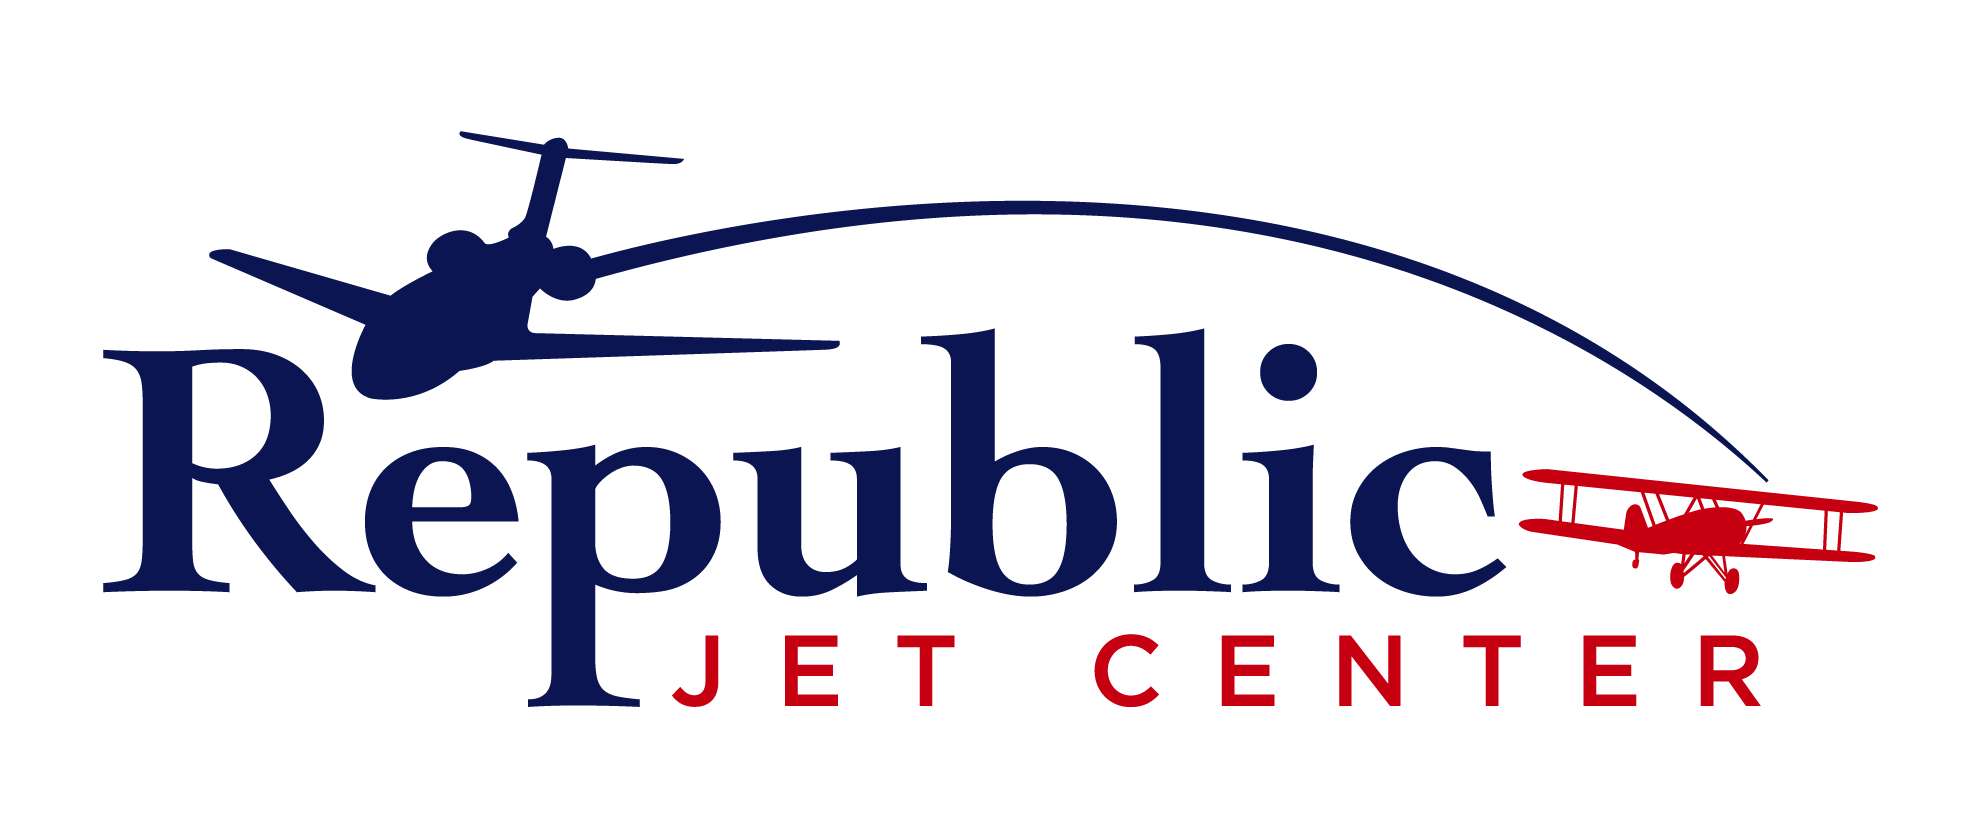 Republic Jet Center Logo